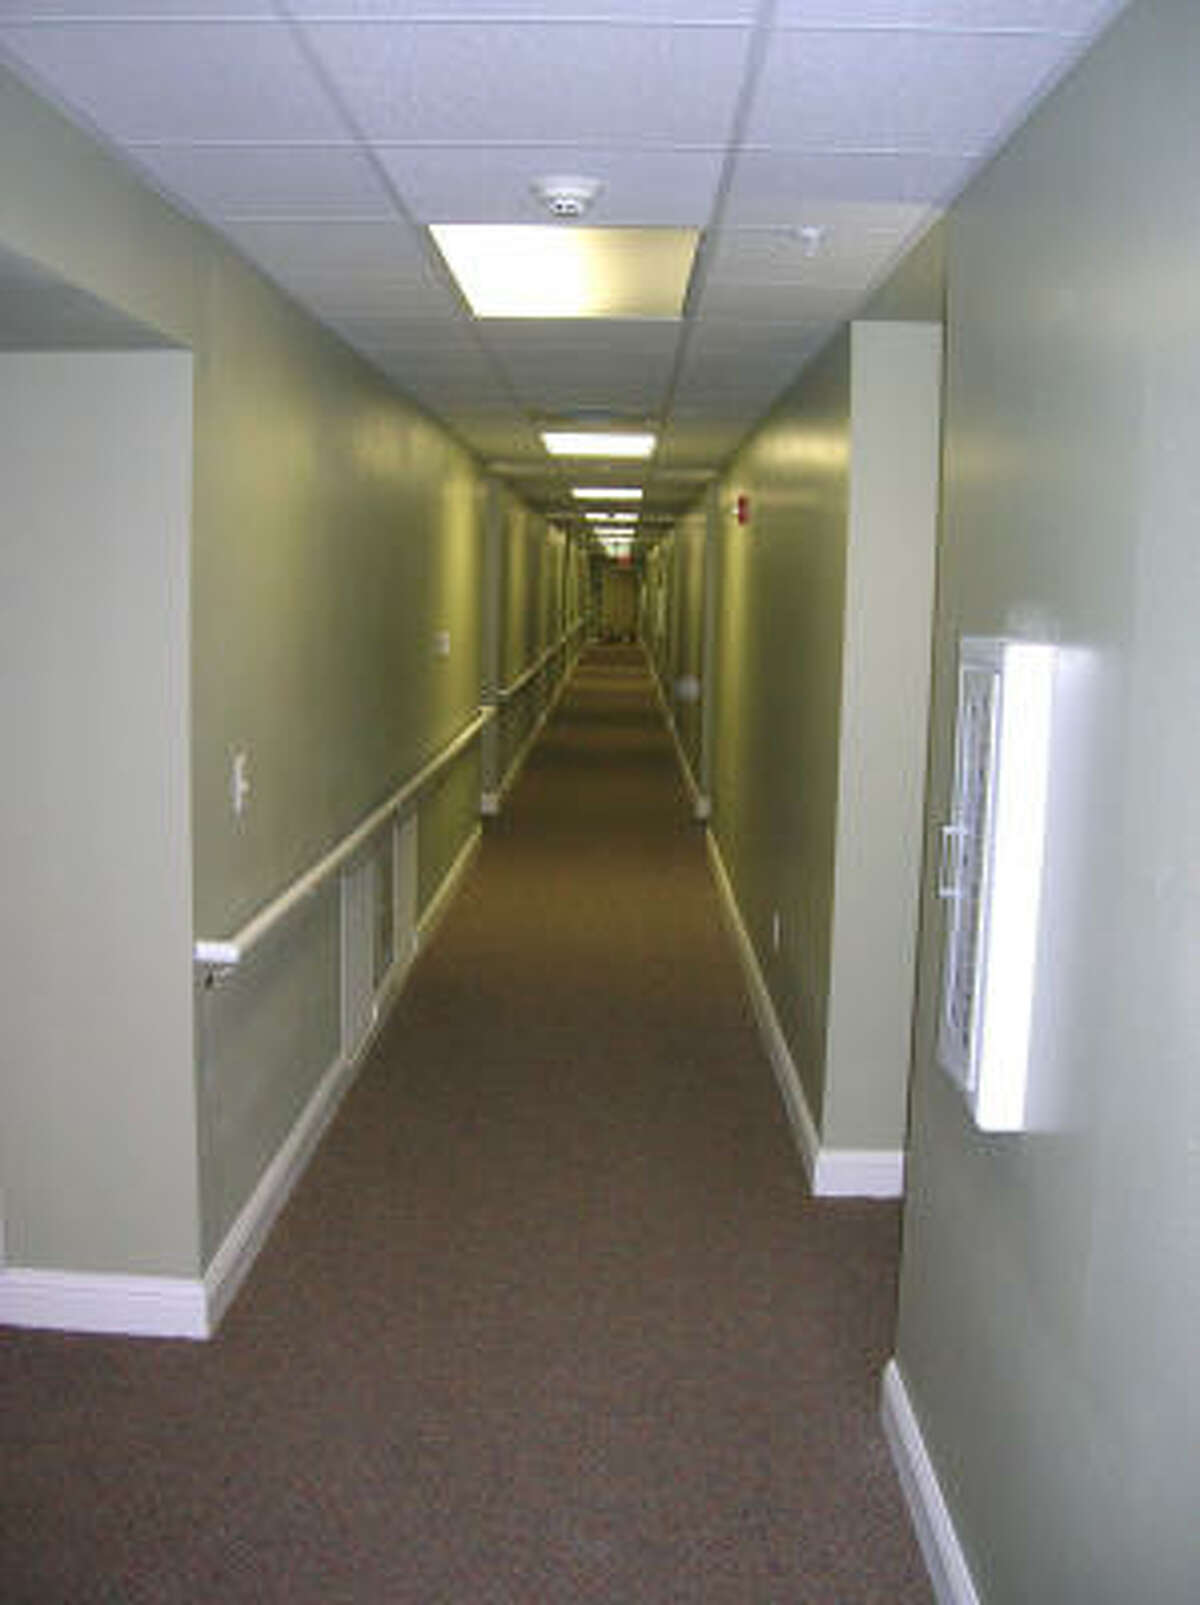 Wide hallways with safety bars are featured on all three floors at the new-and-opening soon Bayou Glen Housing (an affordable senior housing community owned and operated by National Church Residences) at 11810 Southglen in the Alief area. Photo date 4-1-09.